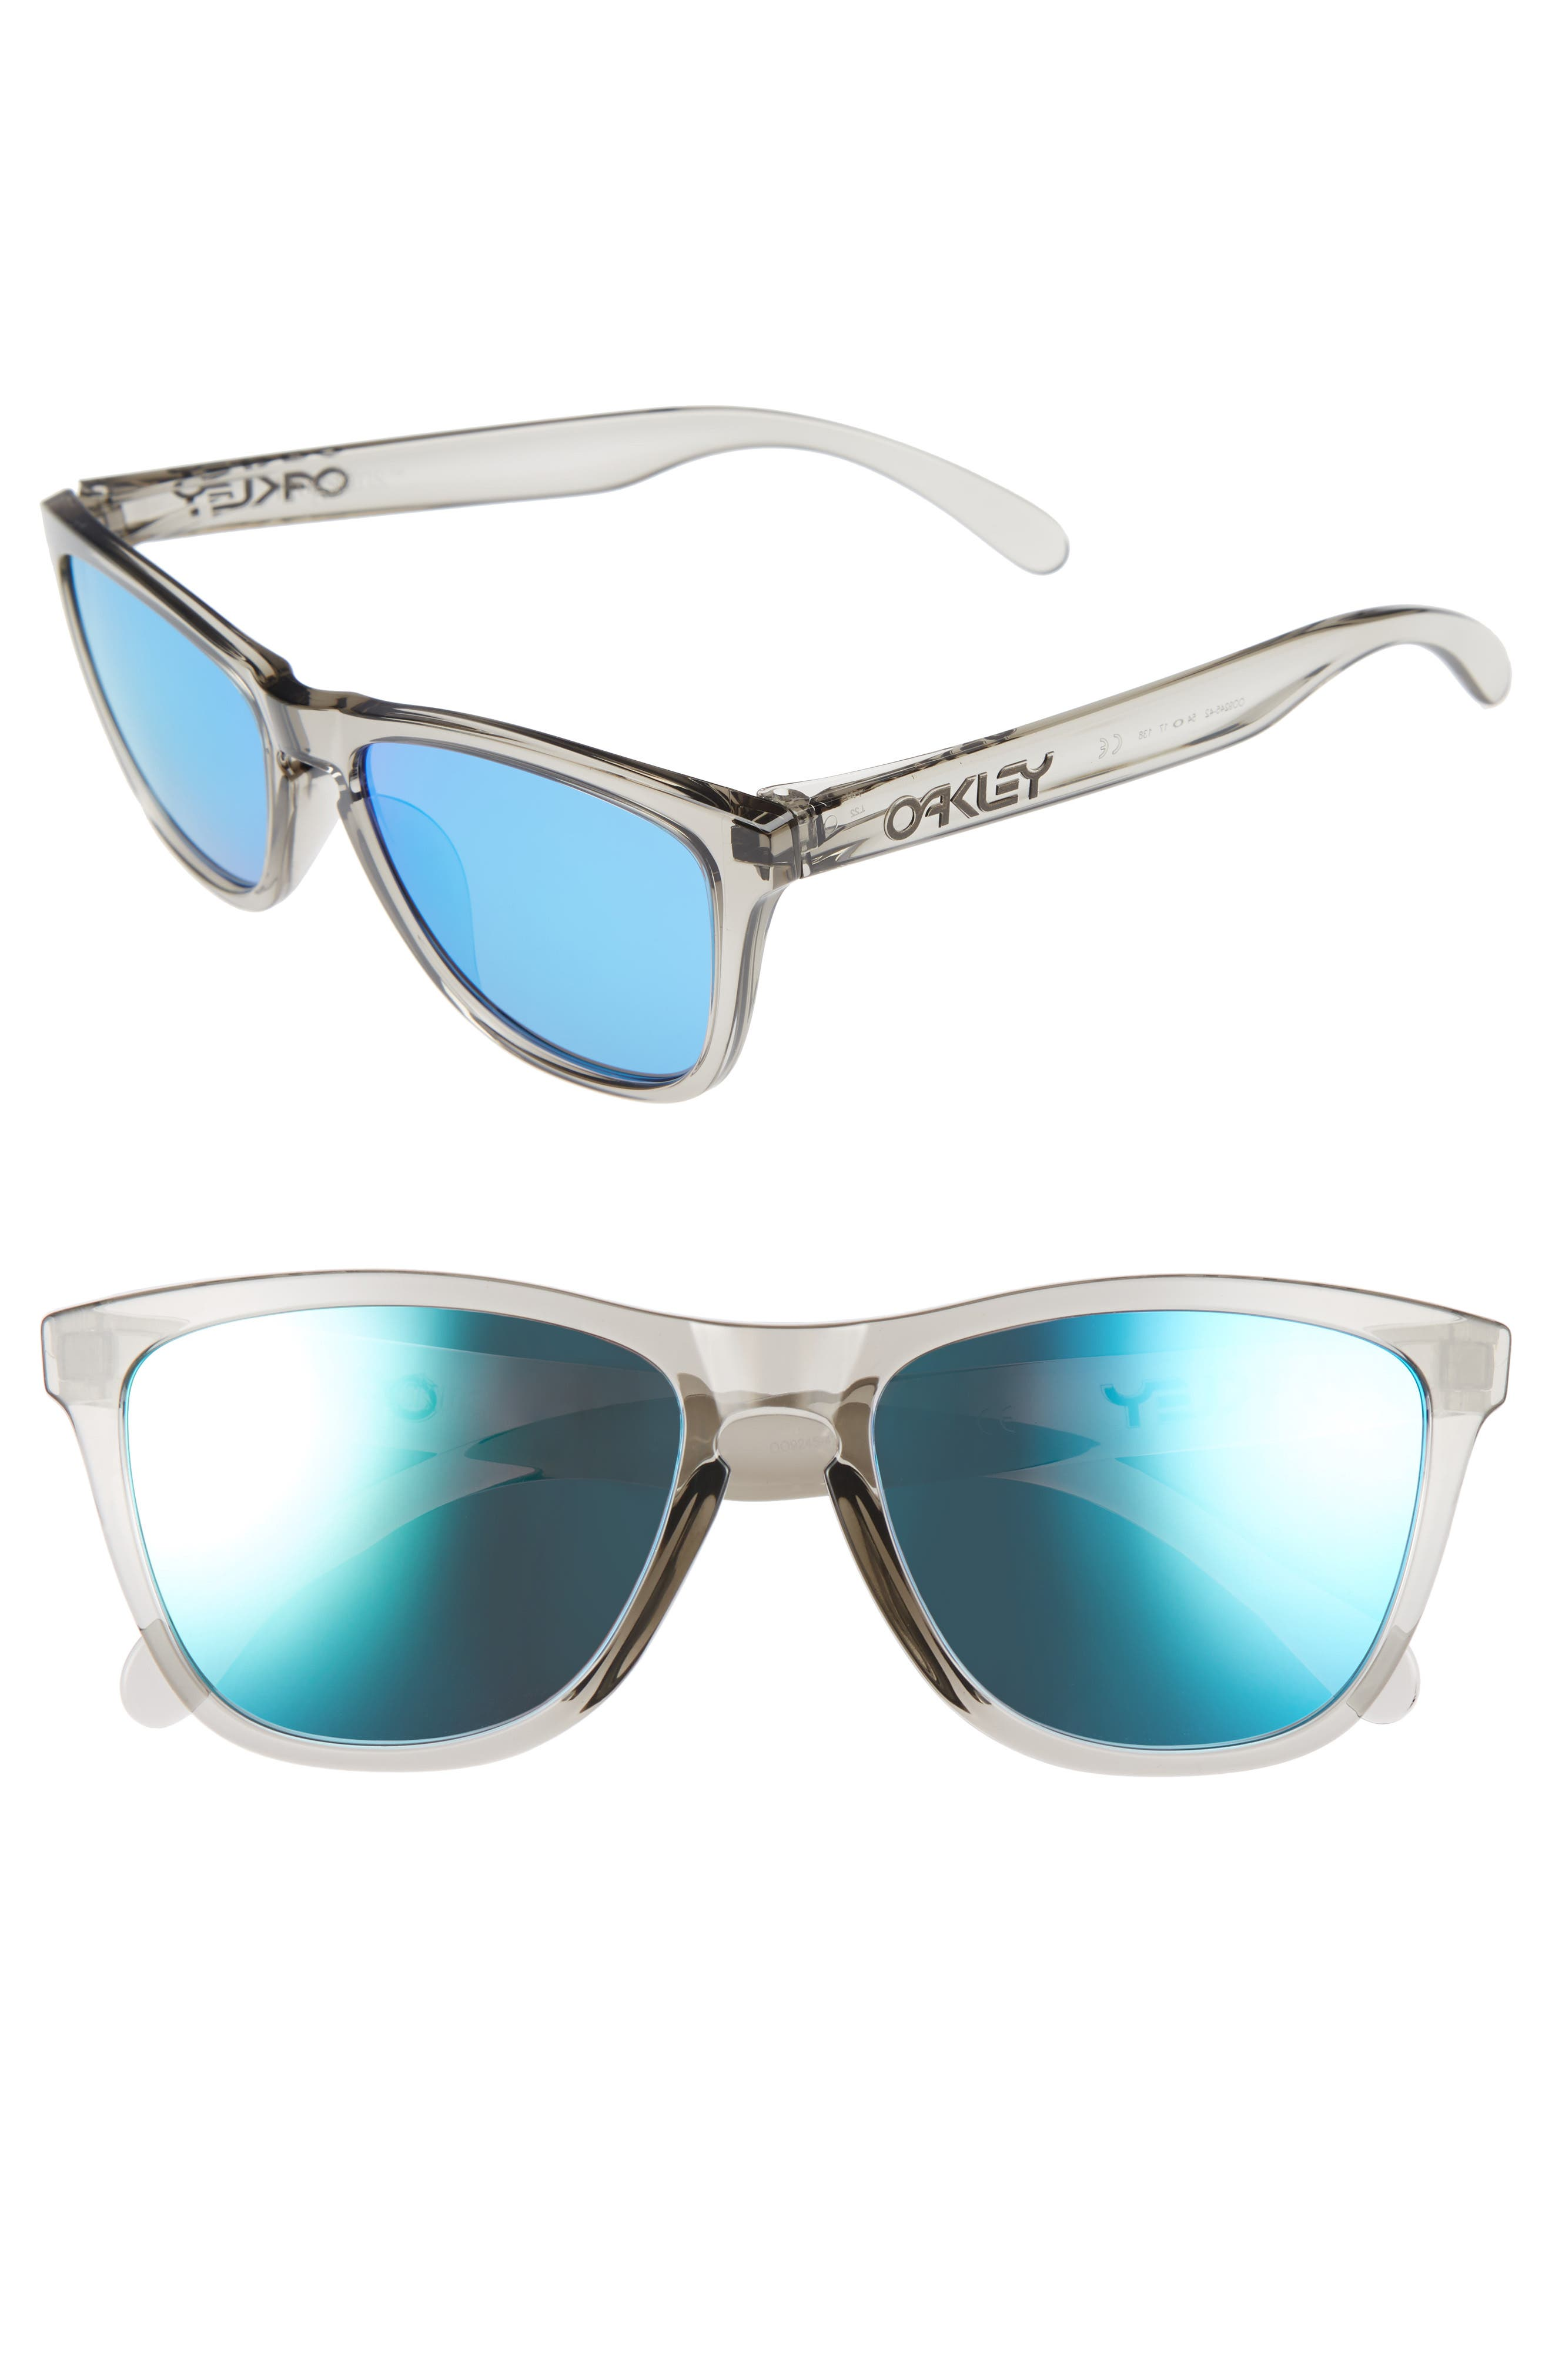 Frogskins<sup>®</sup> 54mm Sunglasses,                         Main,                         color,